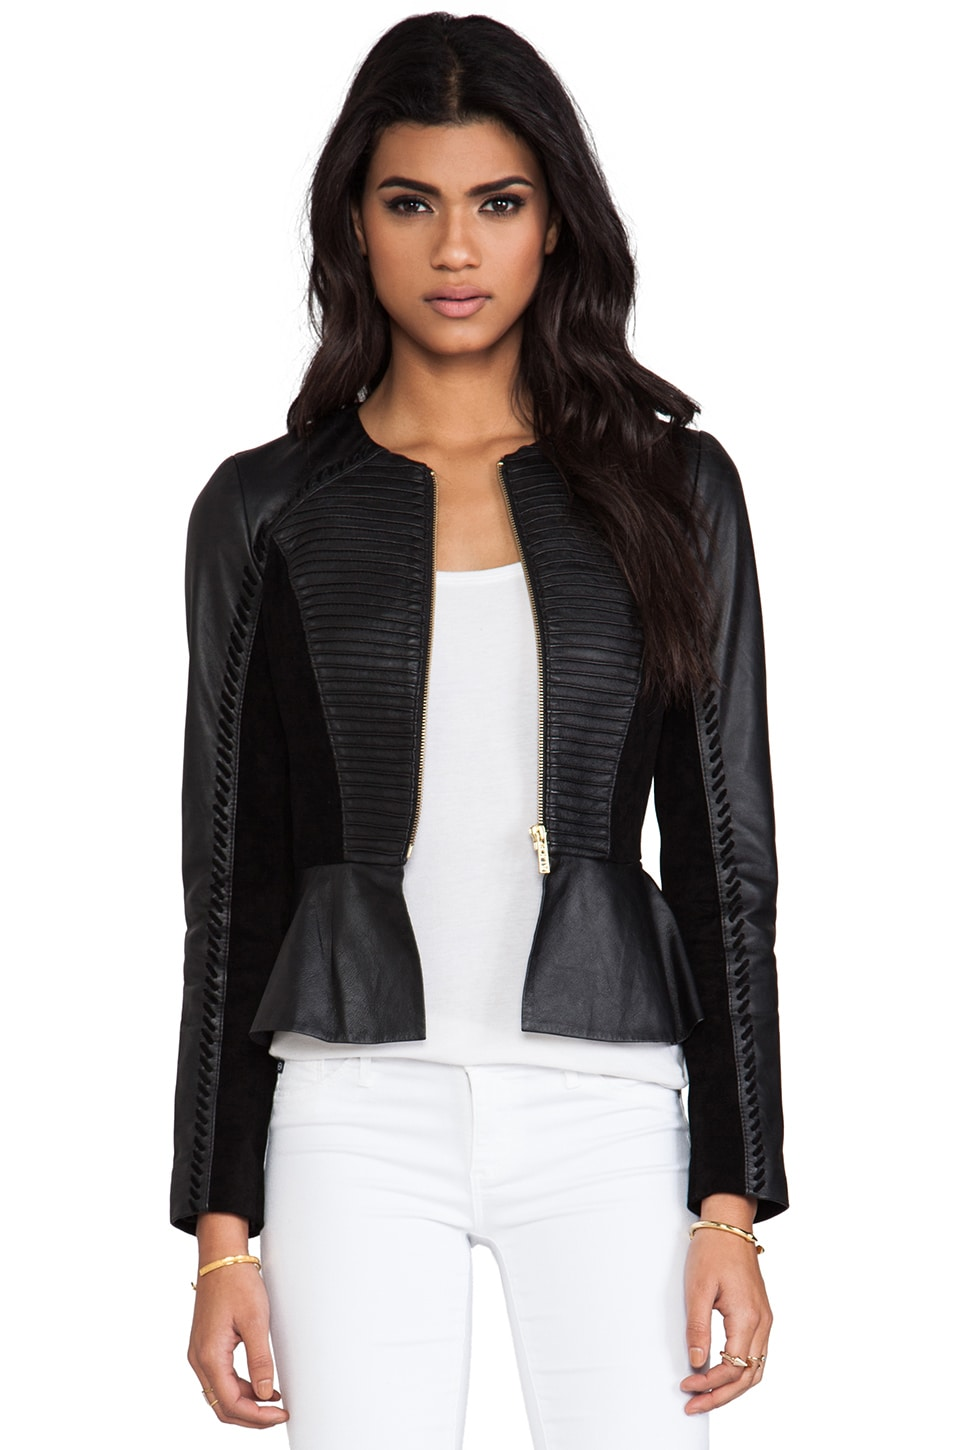 Alice by Temperley Giovanni Jacket in Black Mix